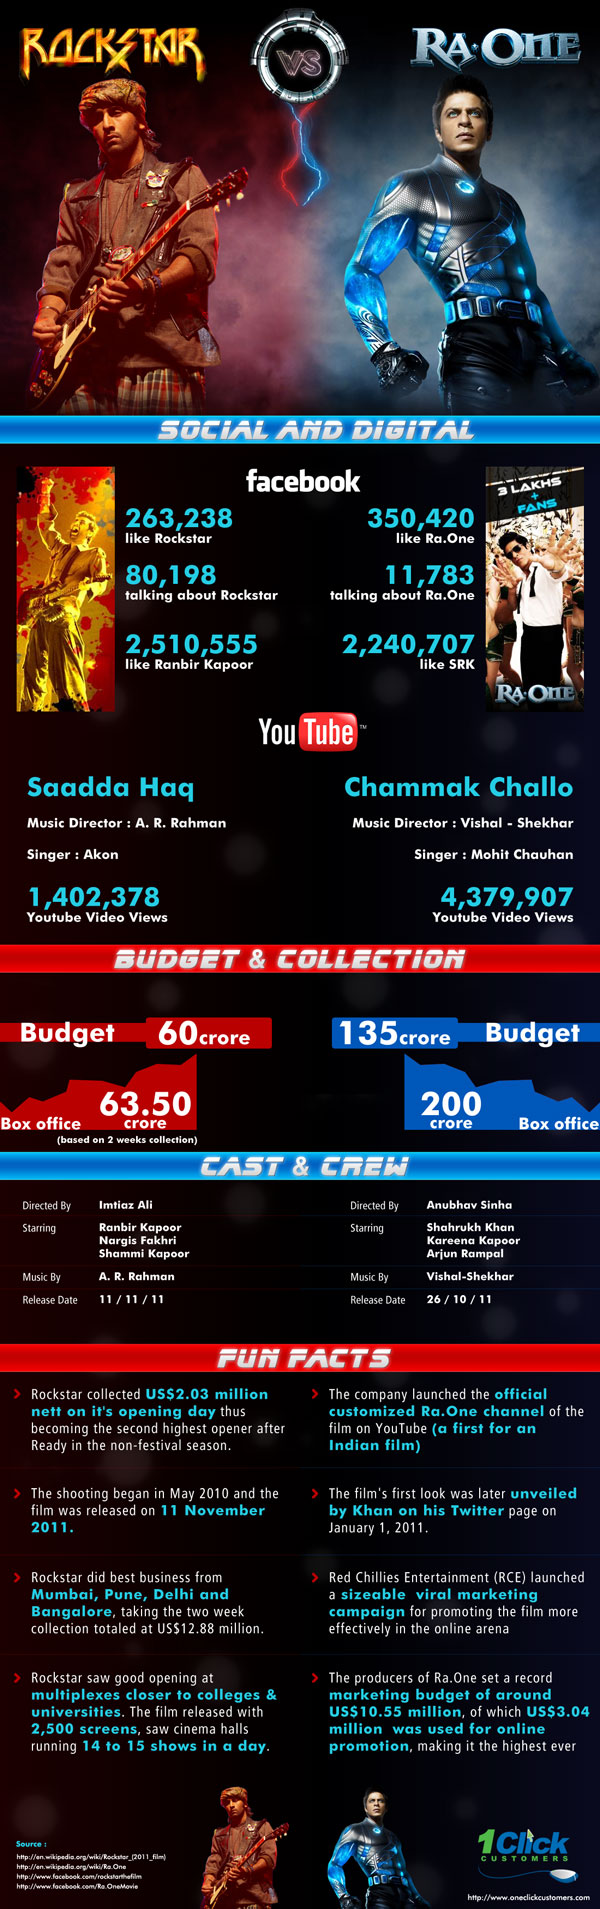 Bollywood Movie Magic - Rockstar vs Ra One